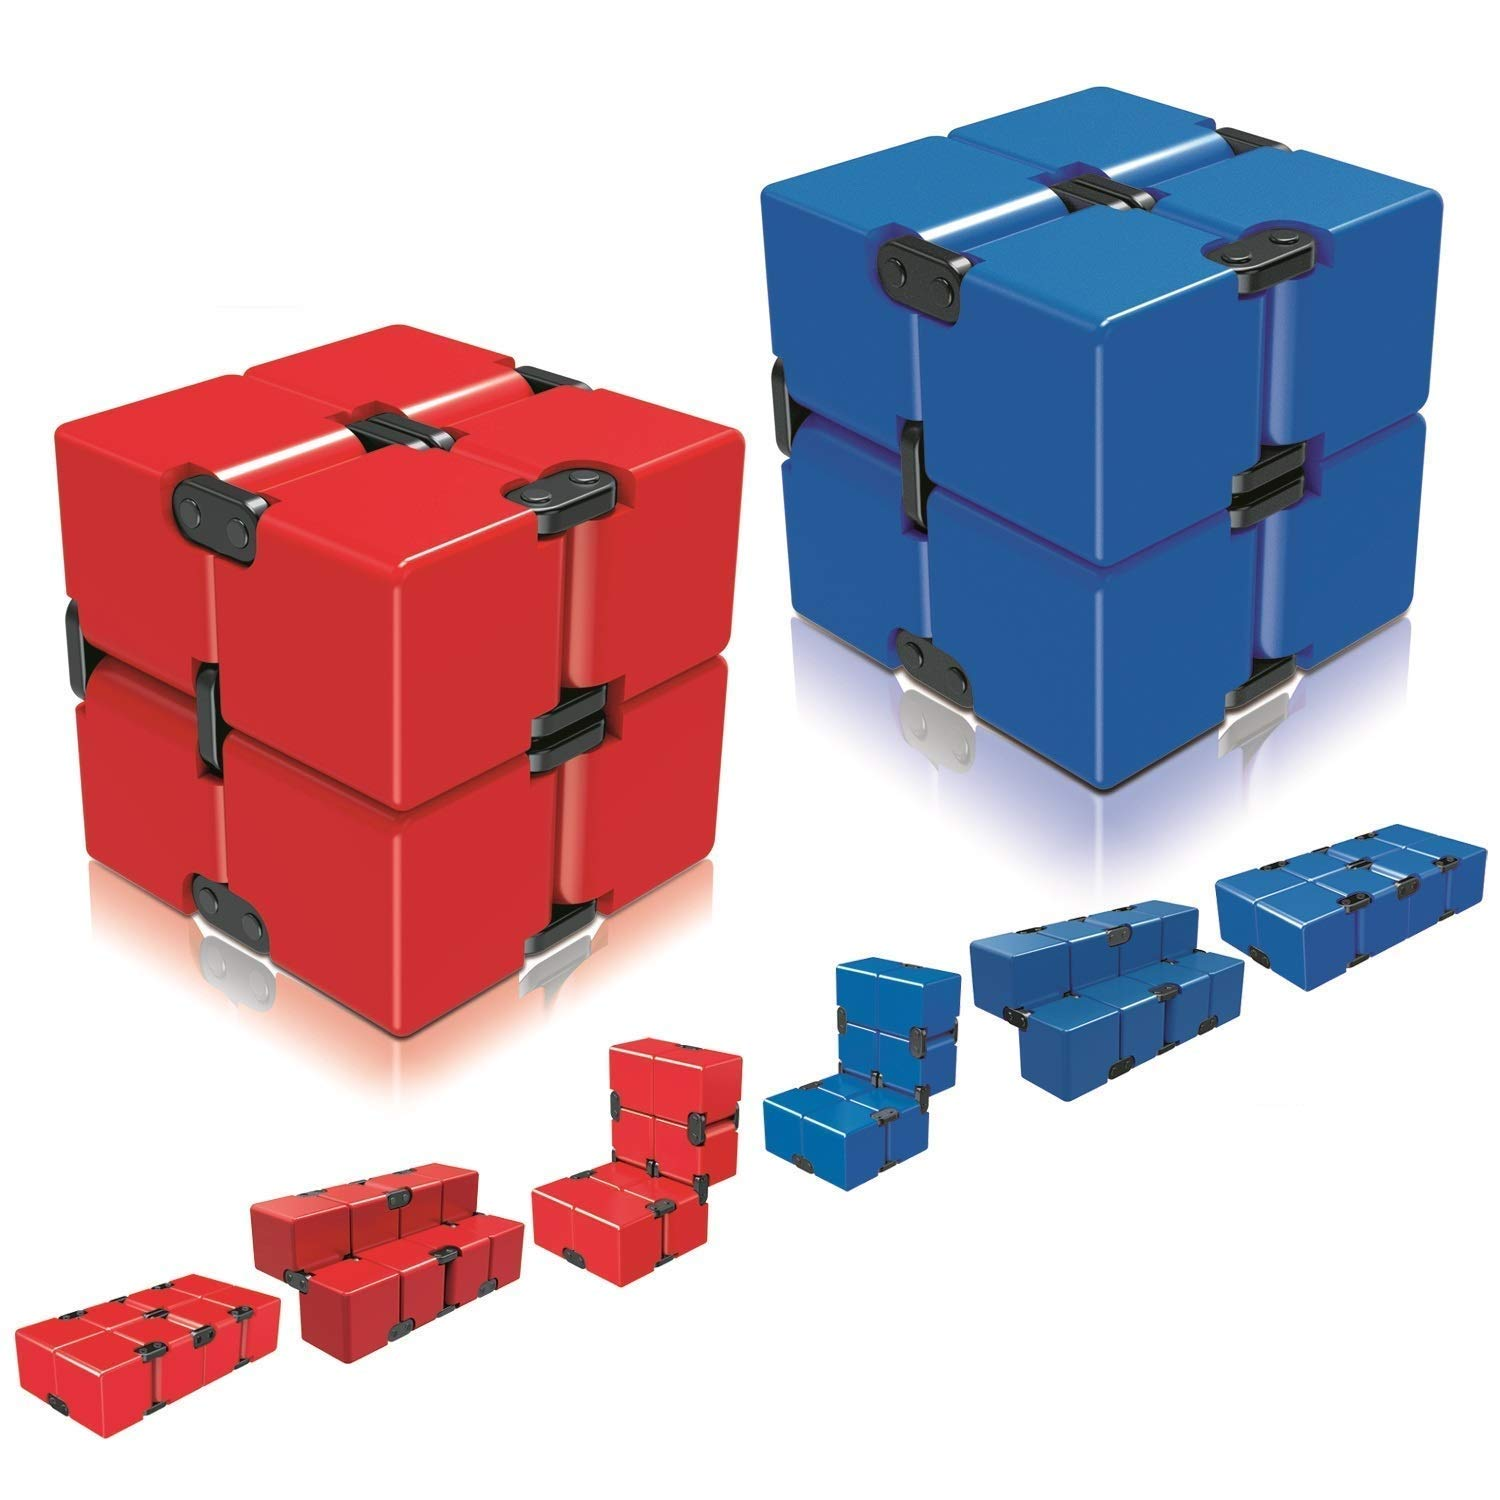 Infinity Cube Fidget Cube Toy for Adults & Kids Relieve Stress & Anxiety Cool Hand Fidget Stress Toy Magic Flip Rubiks Cube for ADD,ADHD,OCD,Anxiety Disorder,Autism by Ganowo (Red&Blue)